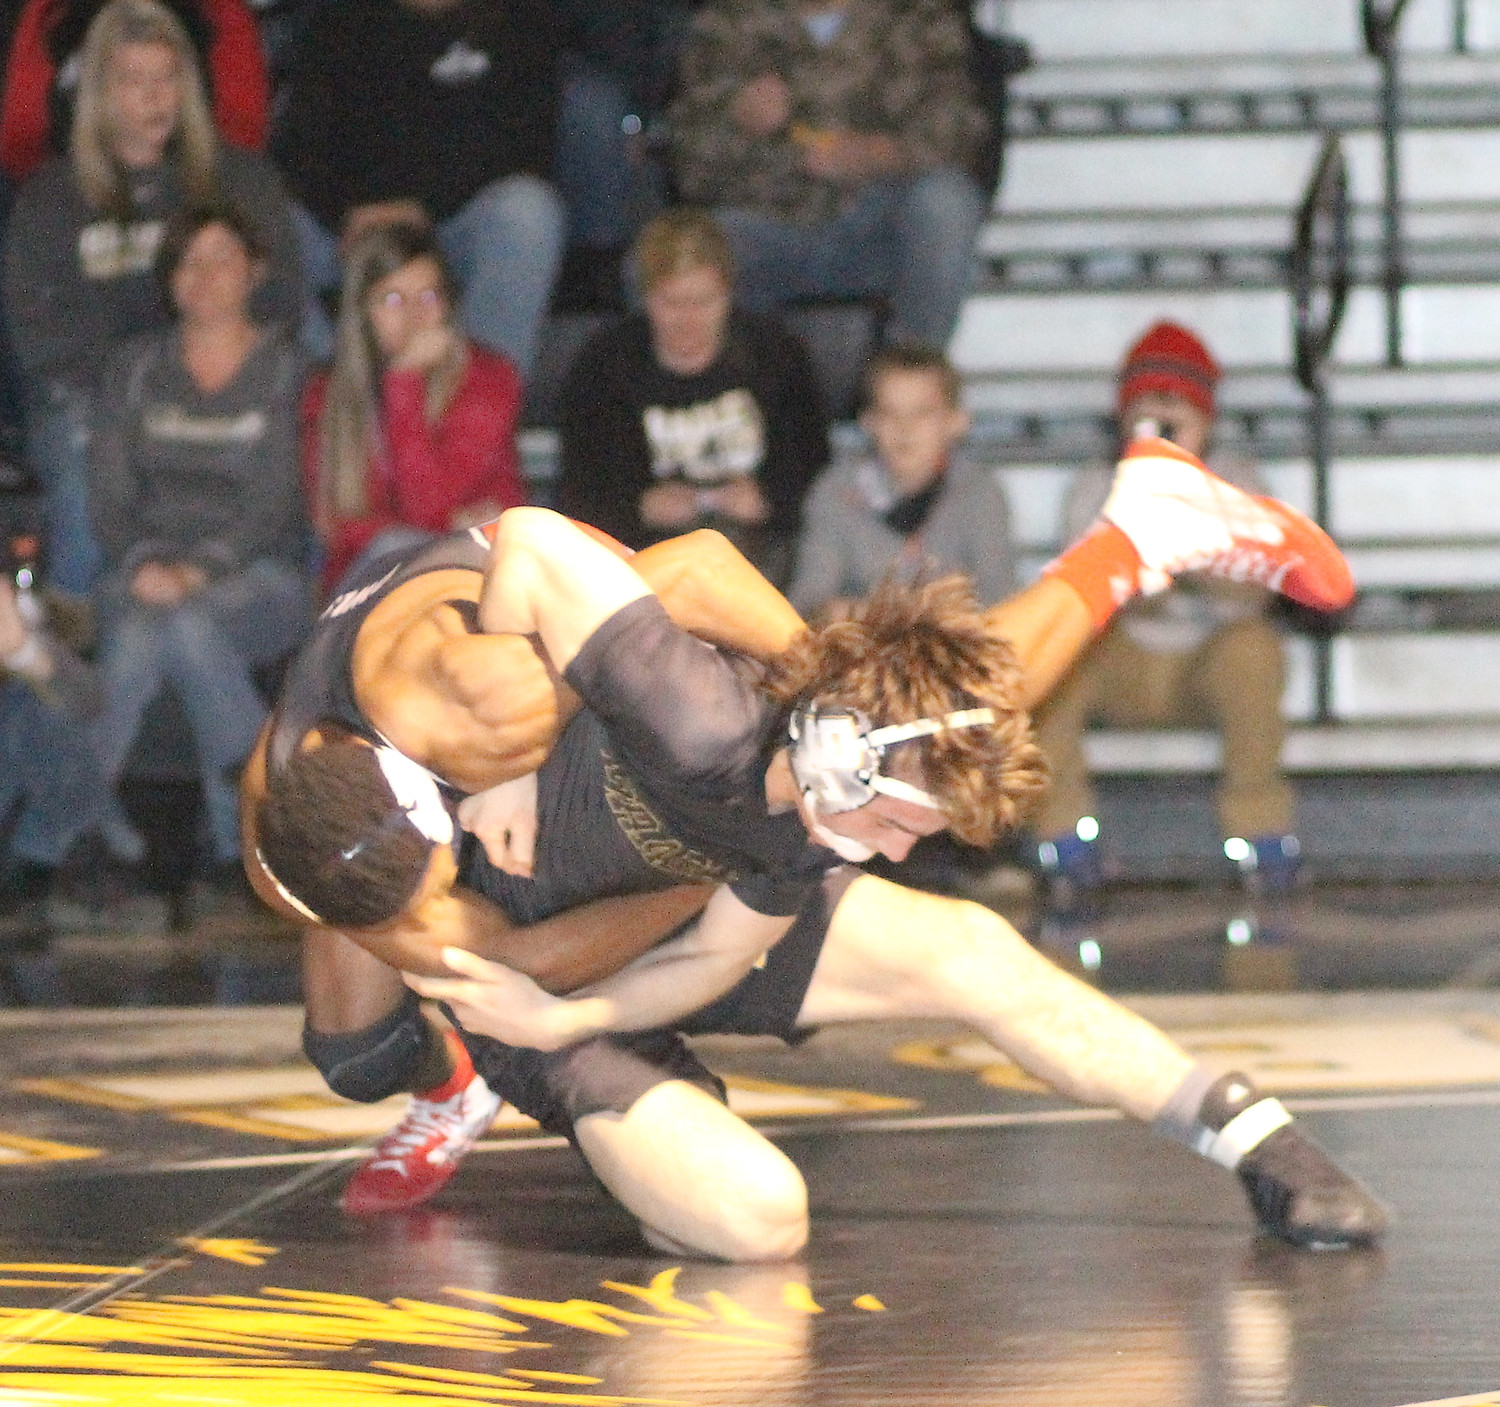 BRADLEY CENTRAL senior Andy Robinson, right, hip tosses Ooltewah's Mykkel Banks to the mat during Tuesday evening's District 8-AAA action at Jim Smiddy Arena. The fifth-ranked 145-pounder led the Bears to a 58-15 win.